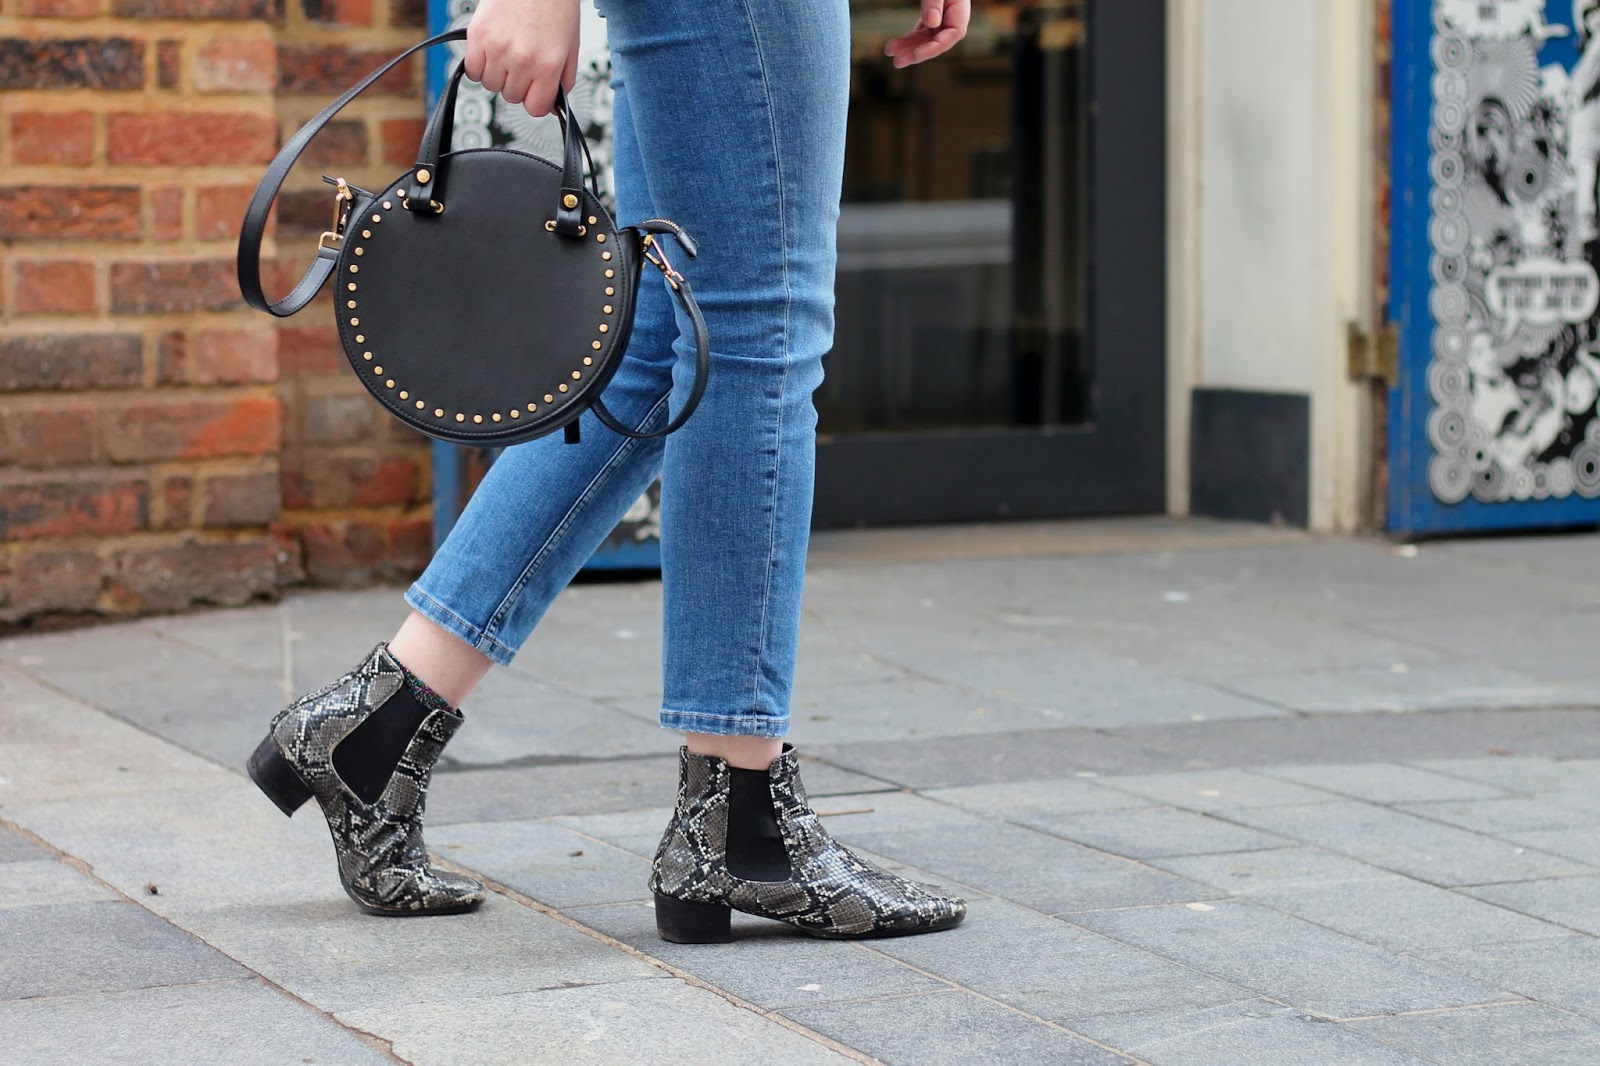 topshop circle round cross body bag with studs in black, blue jeans and asos snake print ankle boots